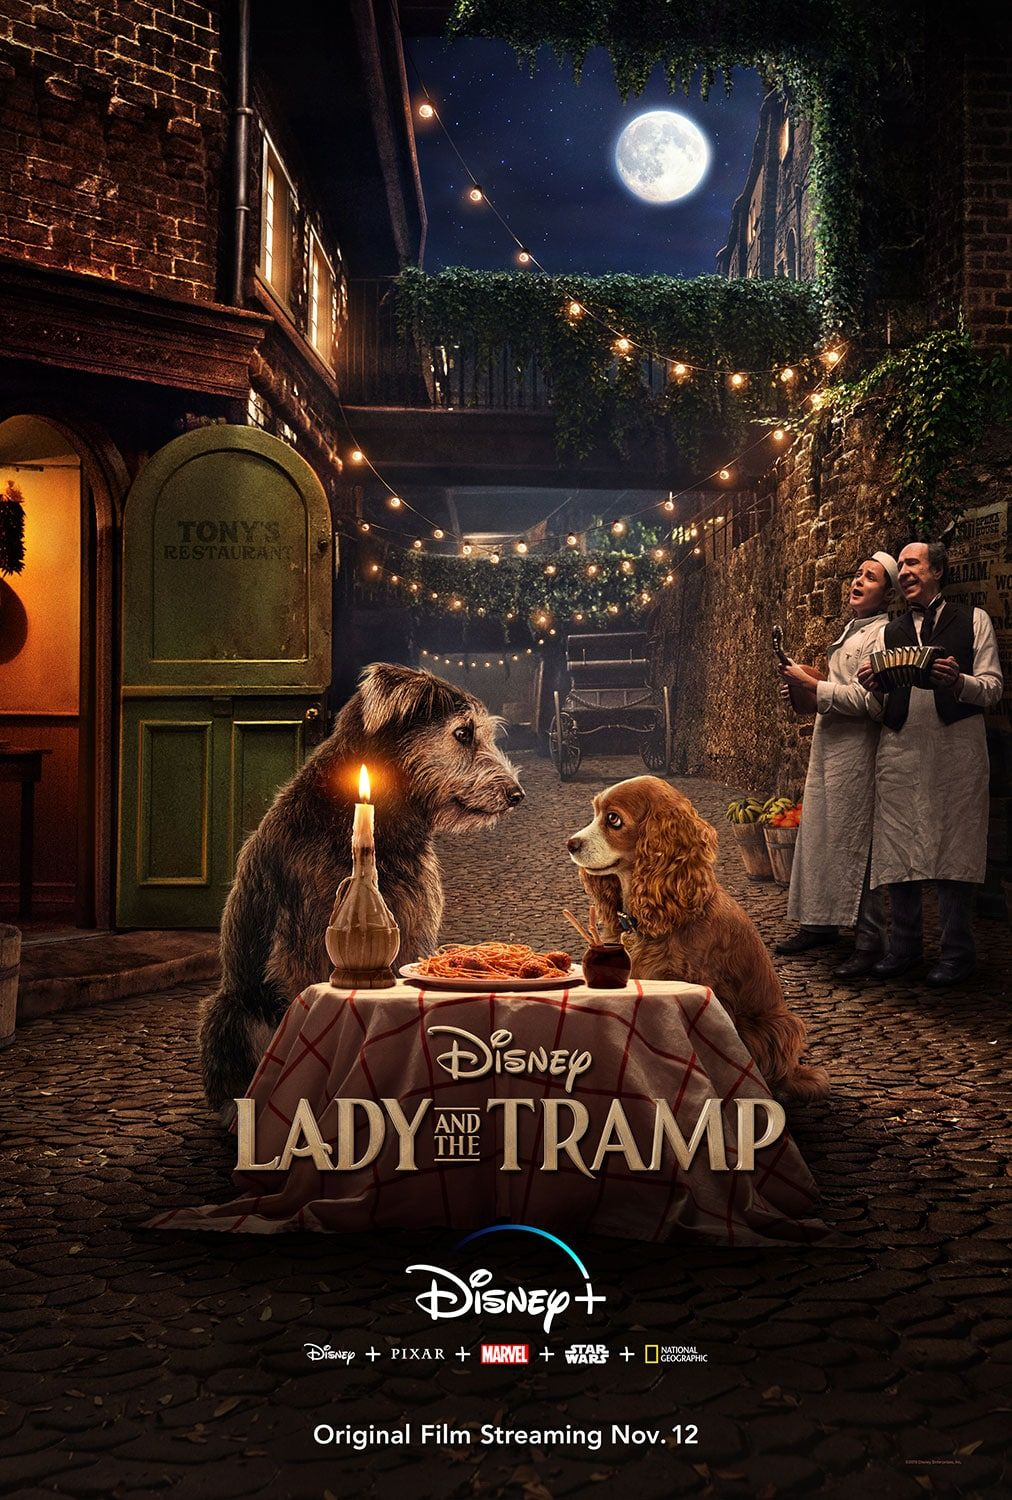 We Can T Get Over How Cute The New Live Action Lady And The Tramp Looks Disney Live Action Movies Lady And The Tramp Tramps Movie